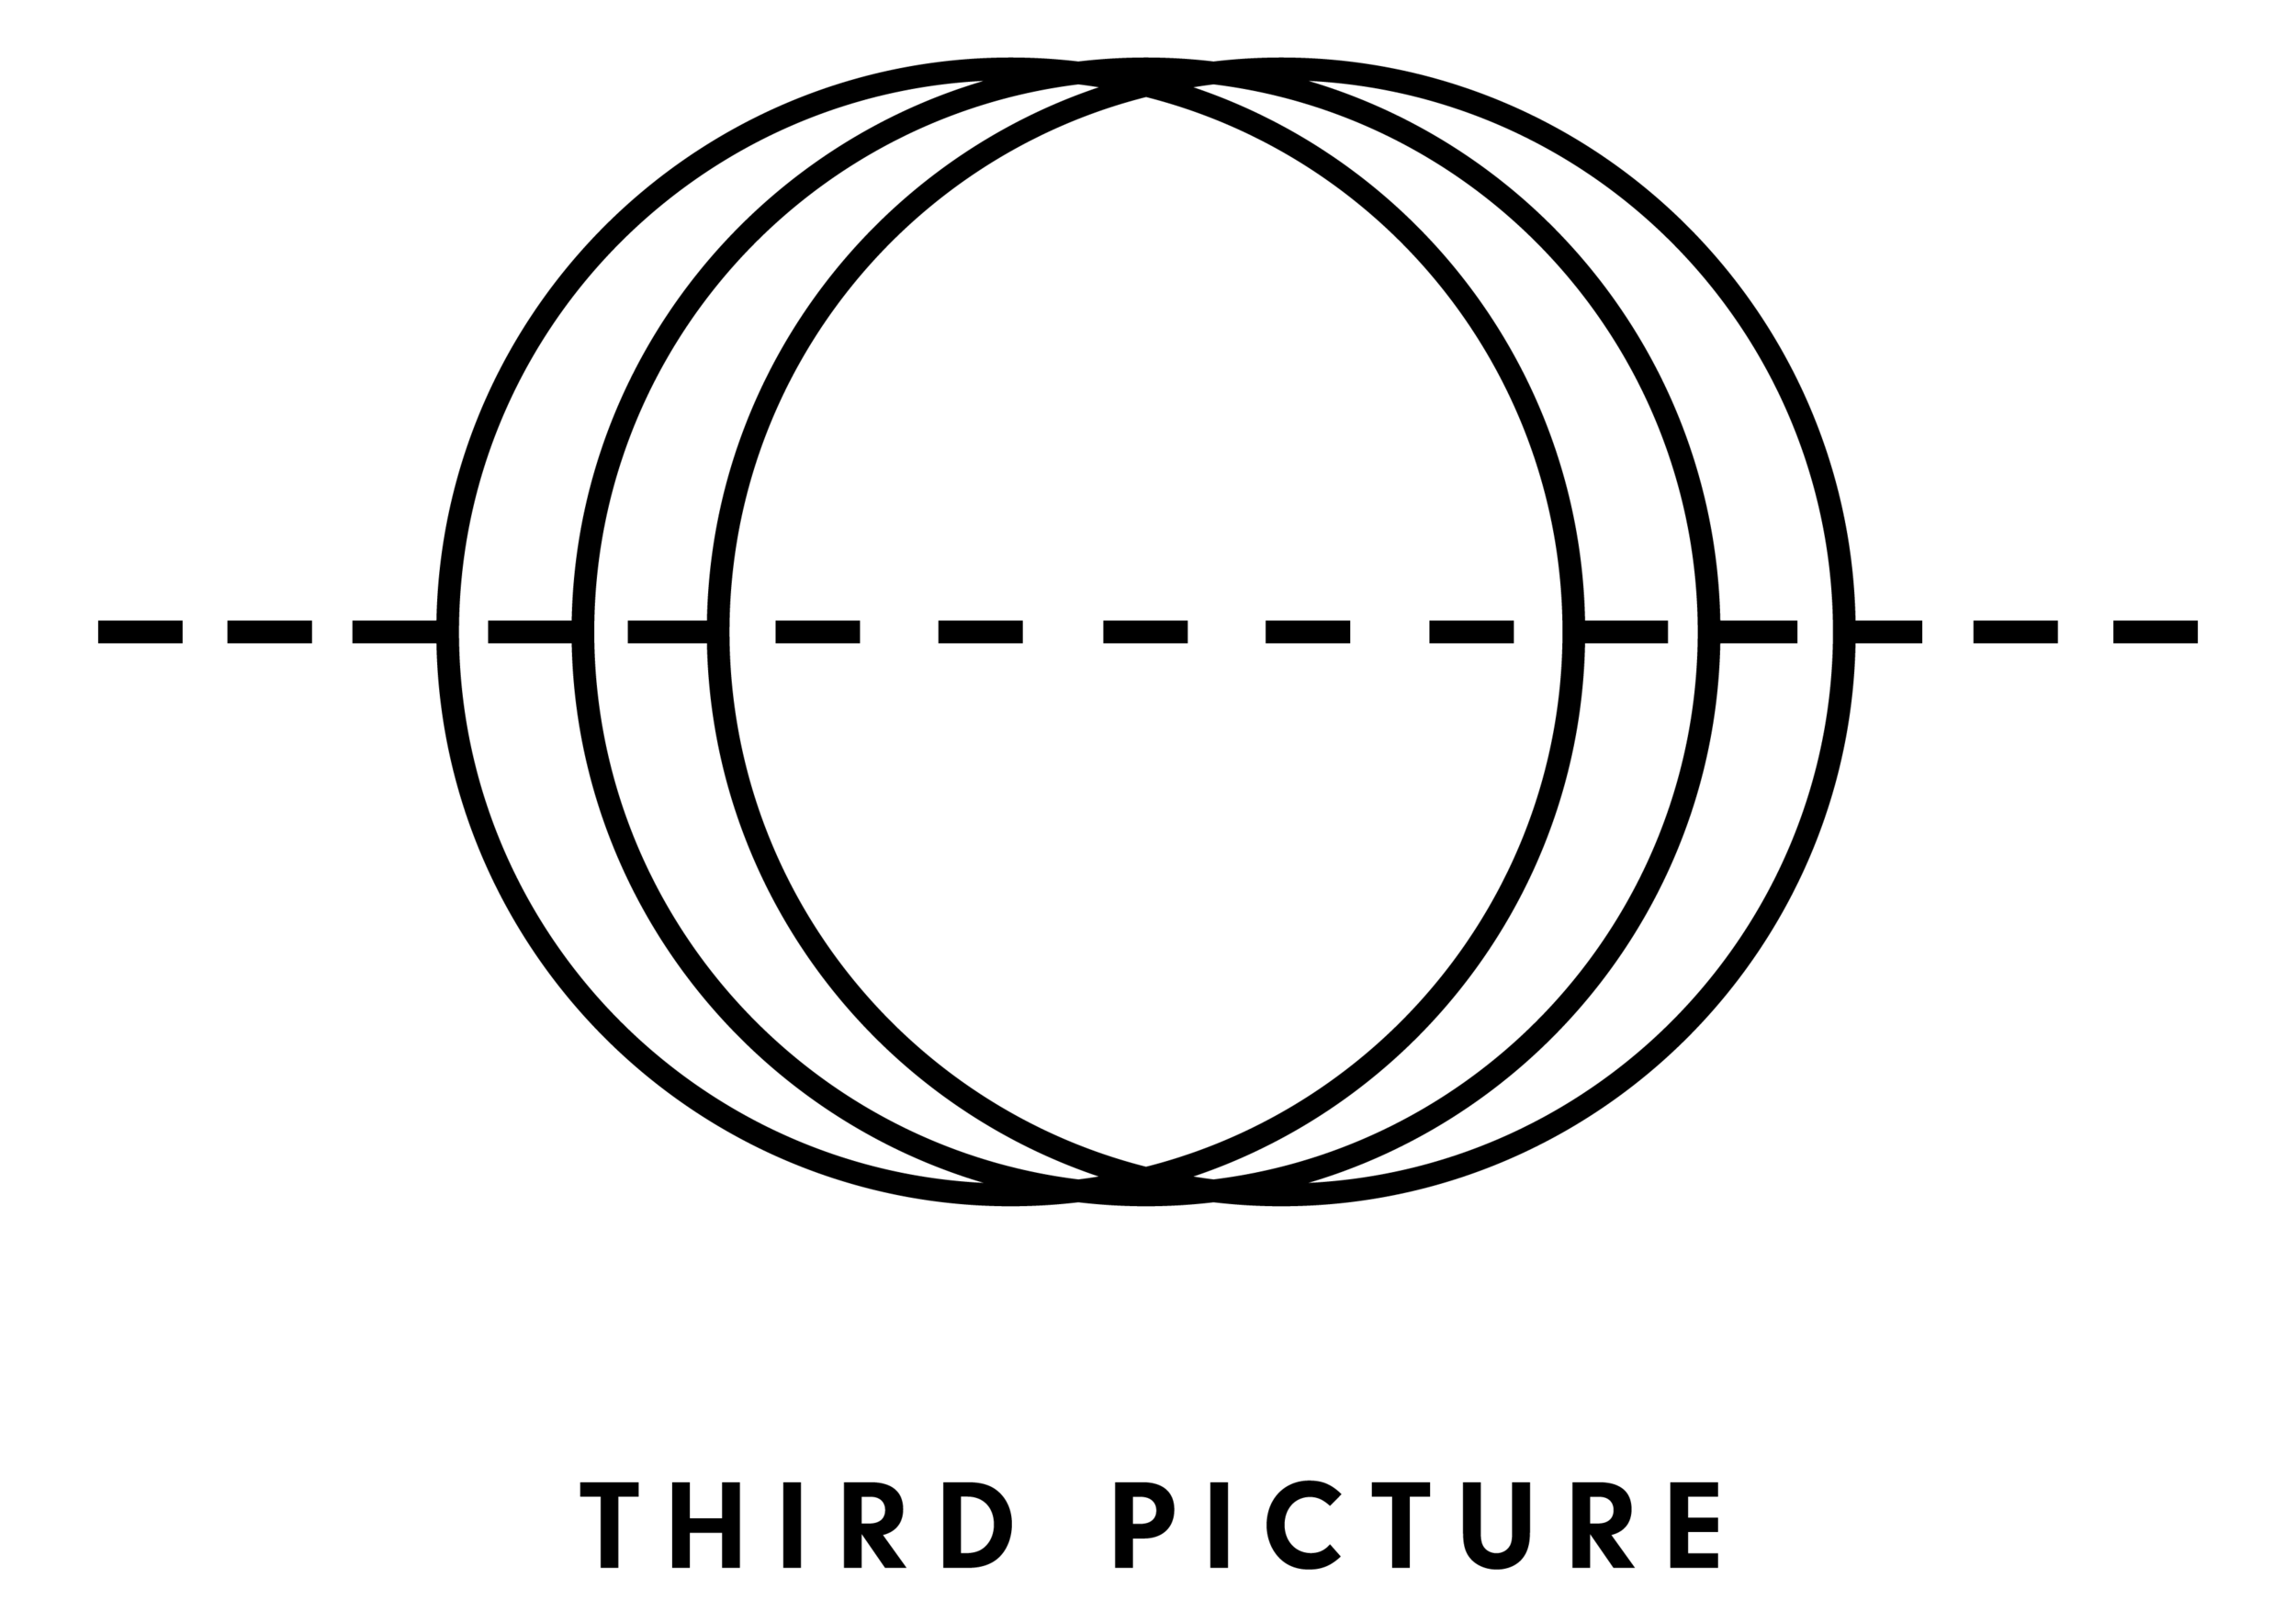 LOGO_THIRD_PICTURE_BLACK.png